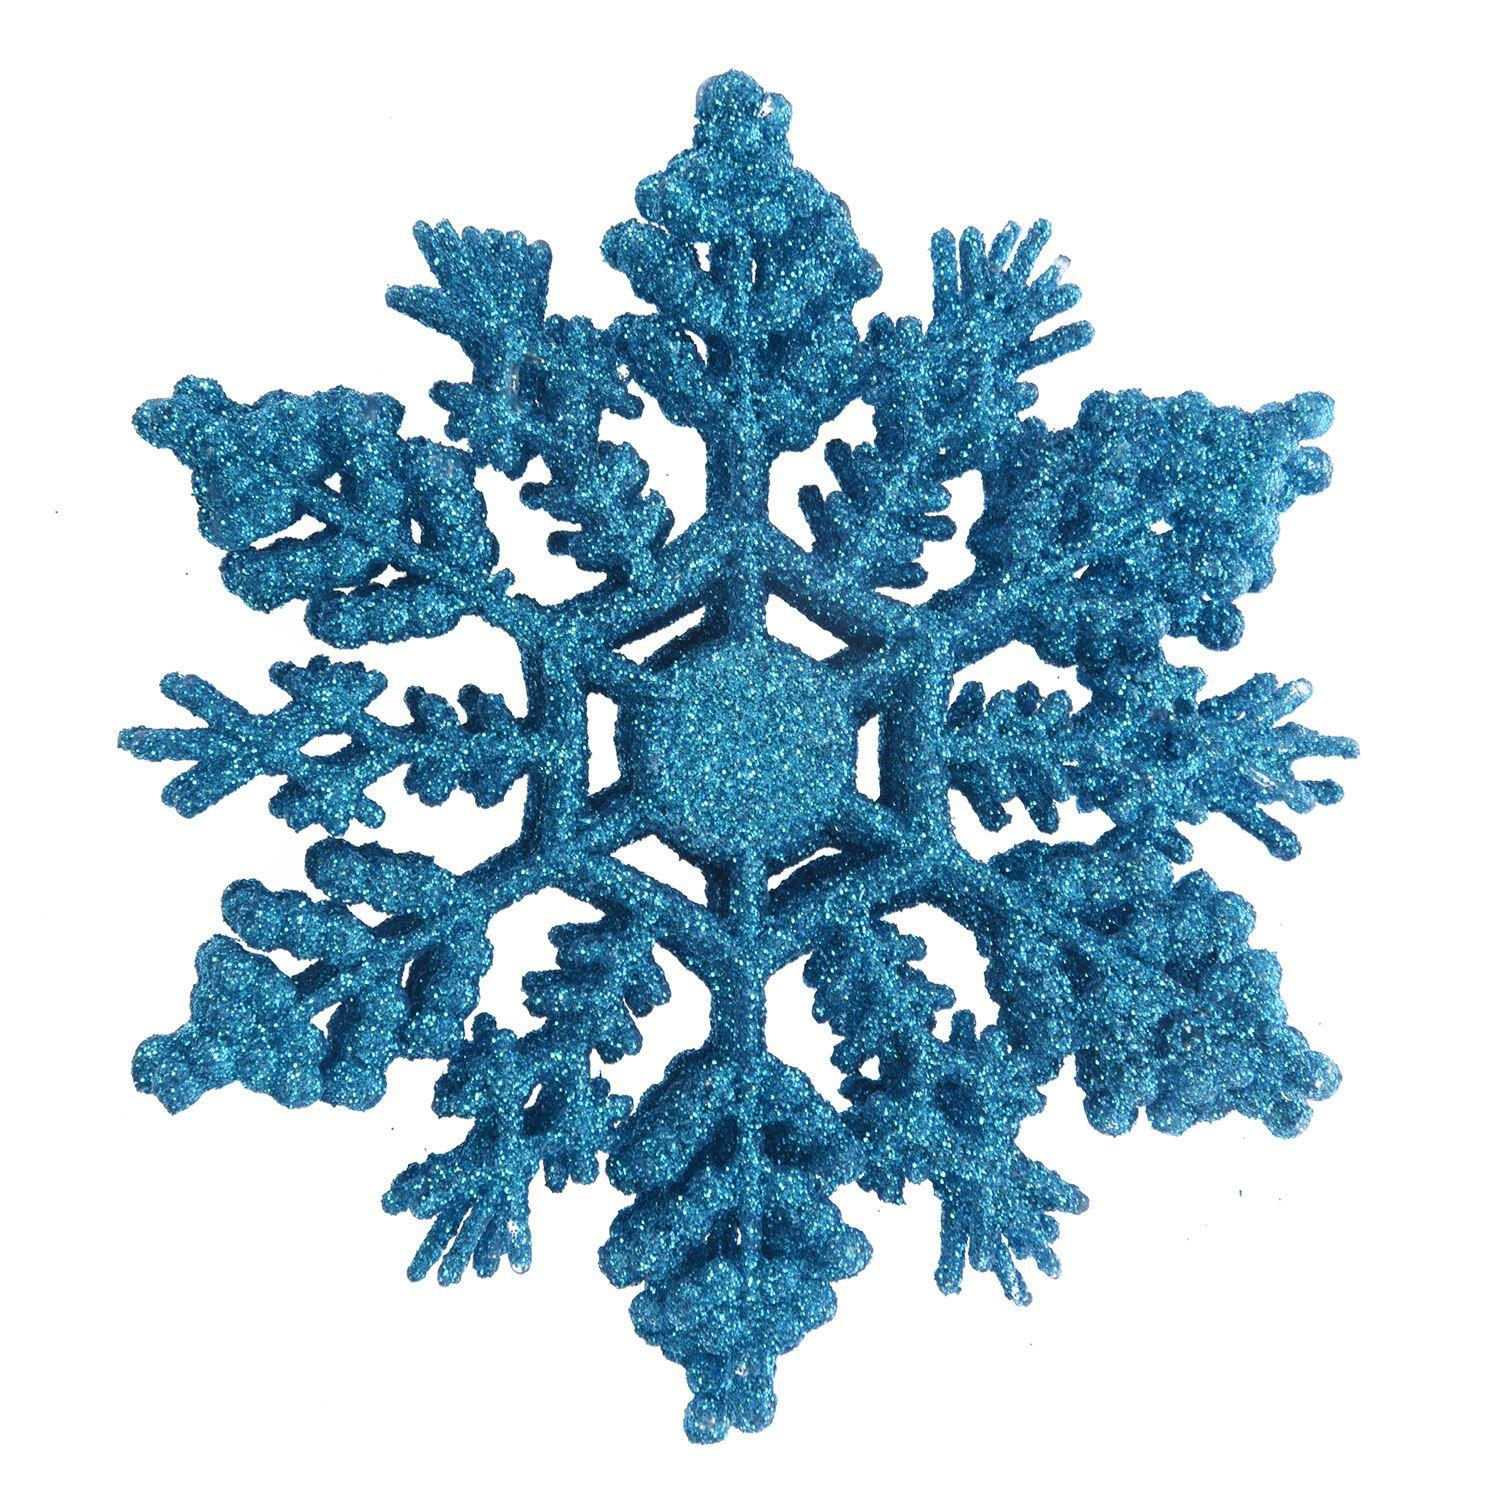 Us 2 12 5 Off 12 Pcs Glitter Snowflake Christmas Ornaments Xmas Tree Hanging Decoration Blue In Pendant Drop Ornaments From Home Garden On